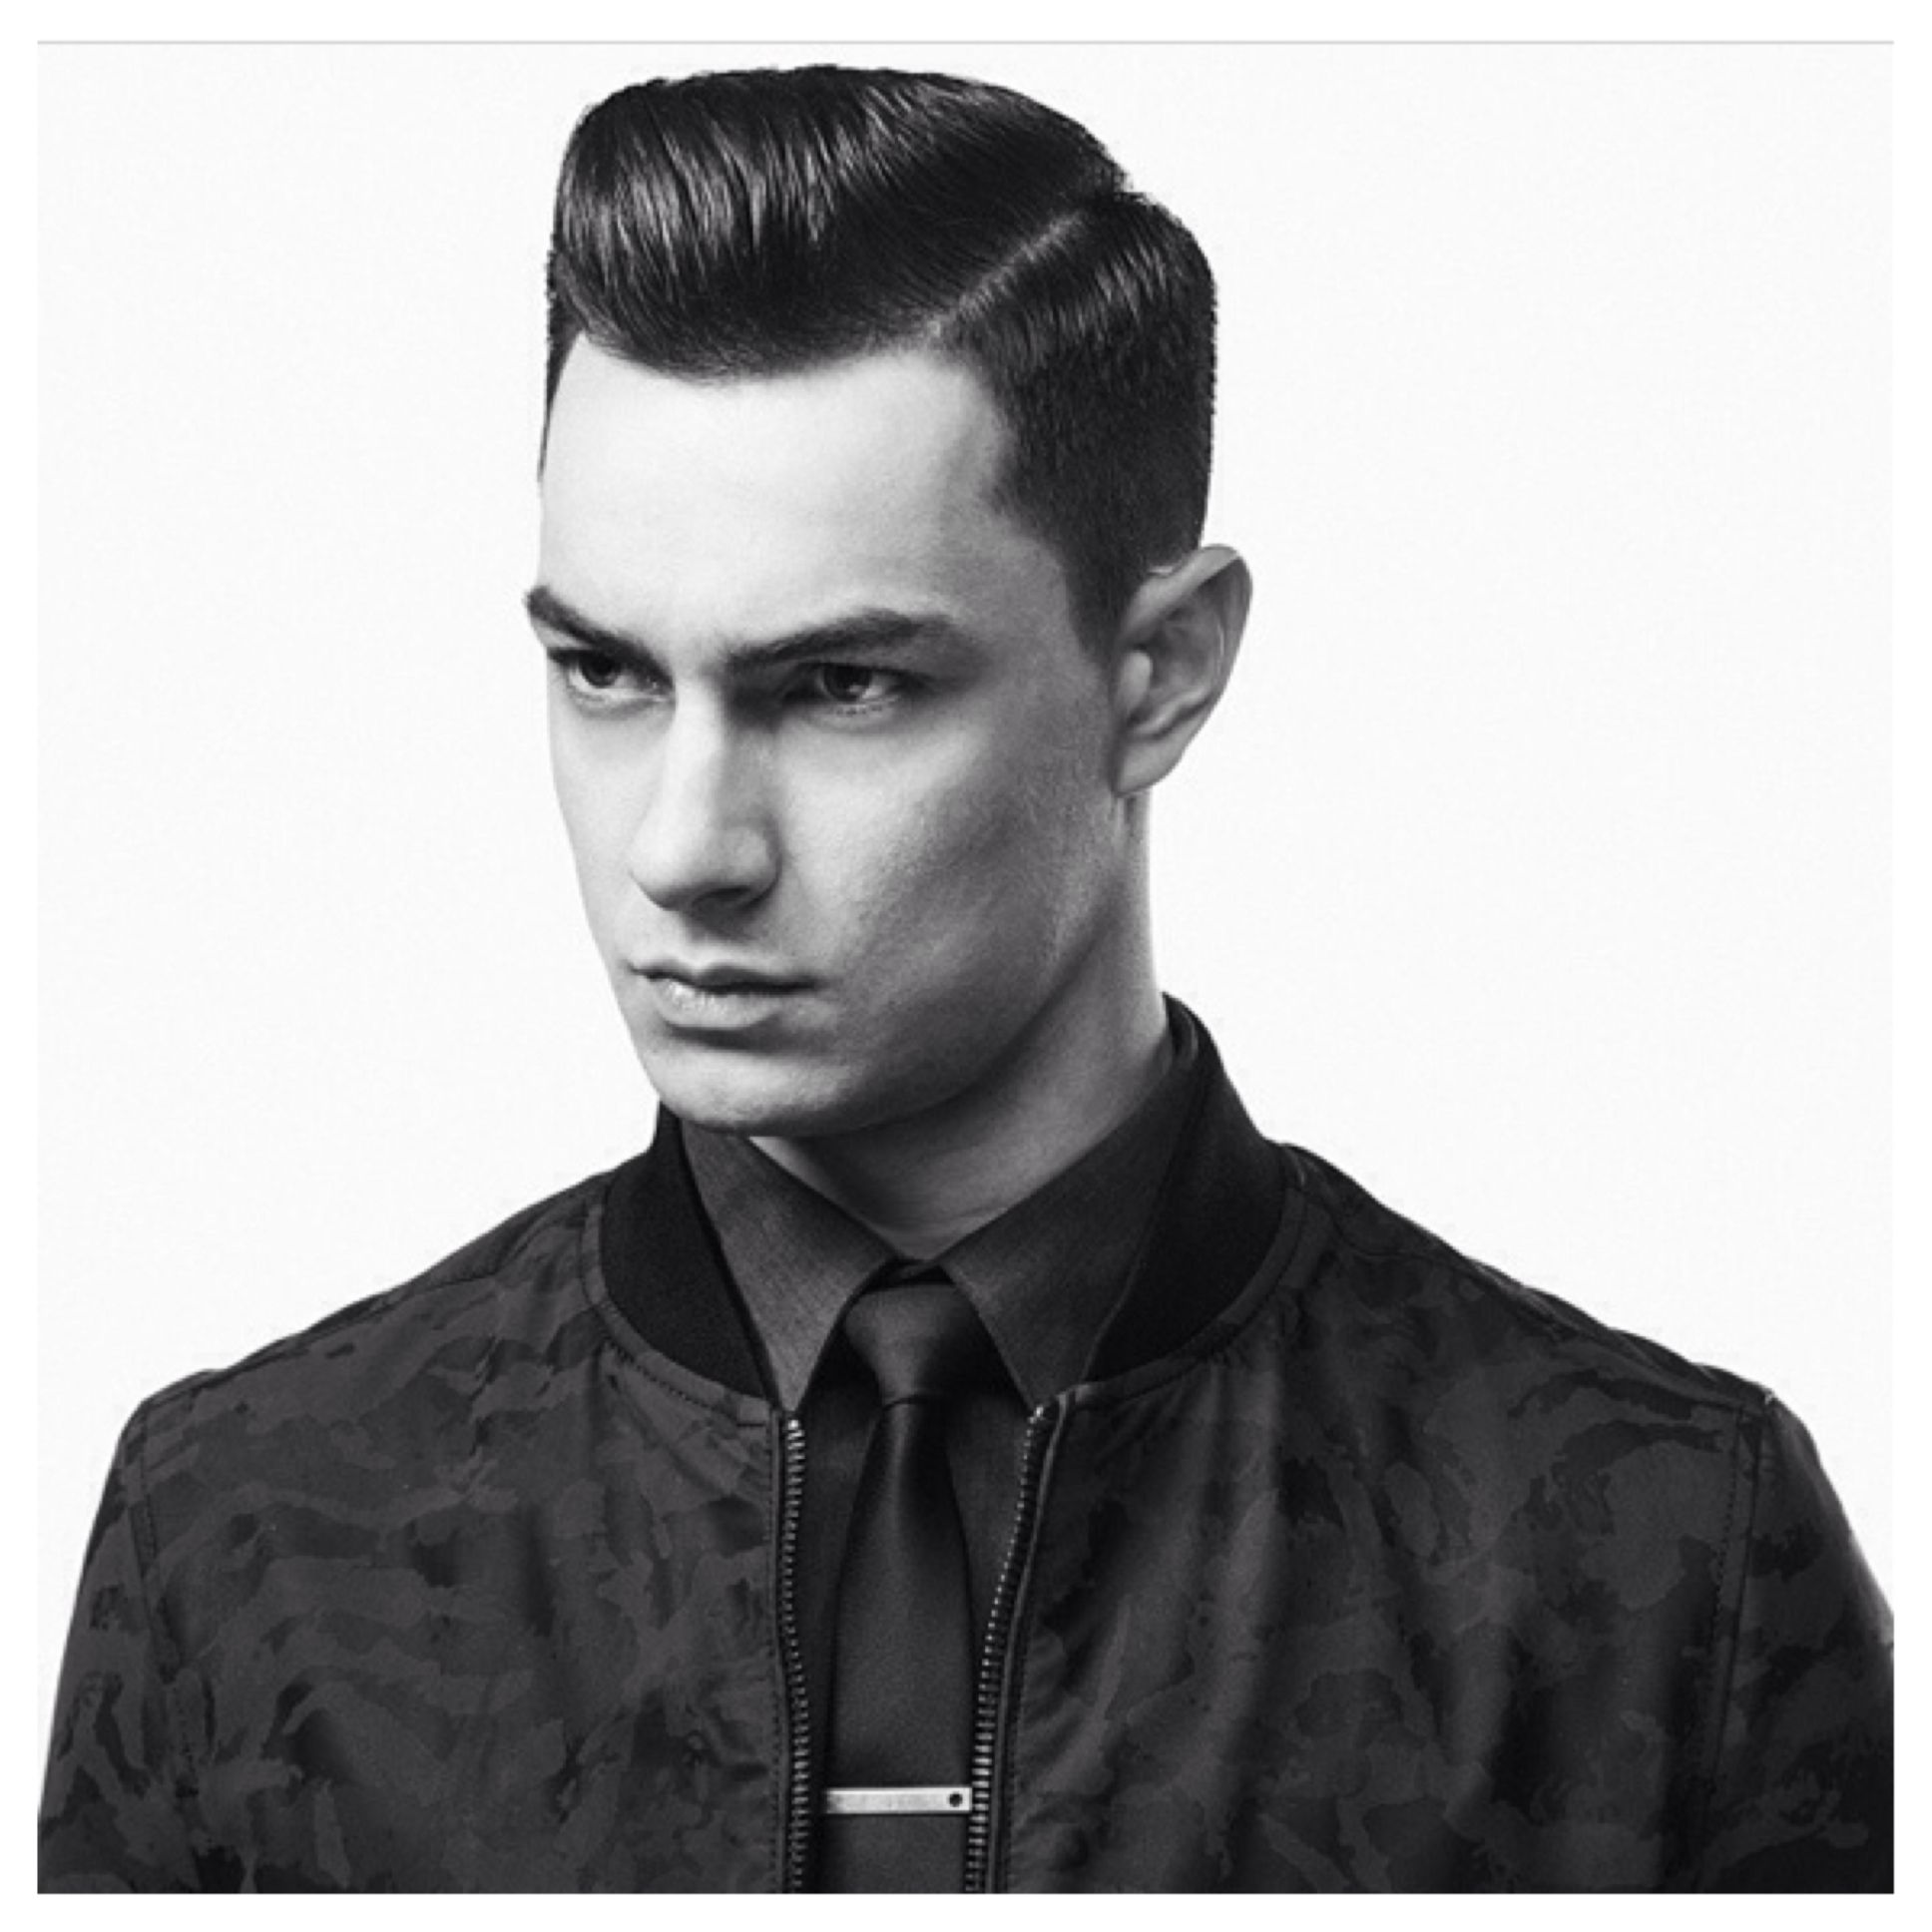 HOW-TO: Sleek, Clean and Connected Men's Cut and Style